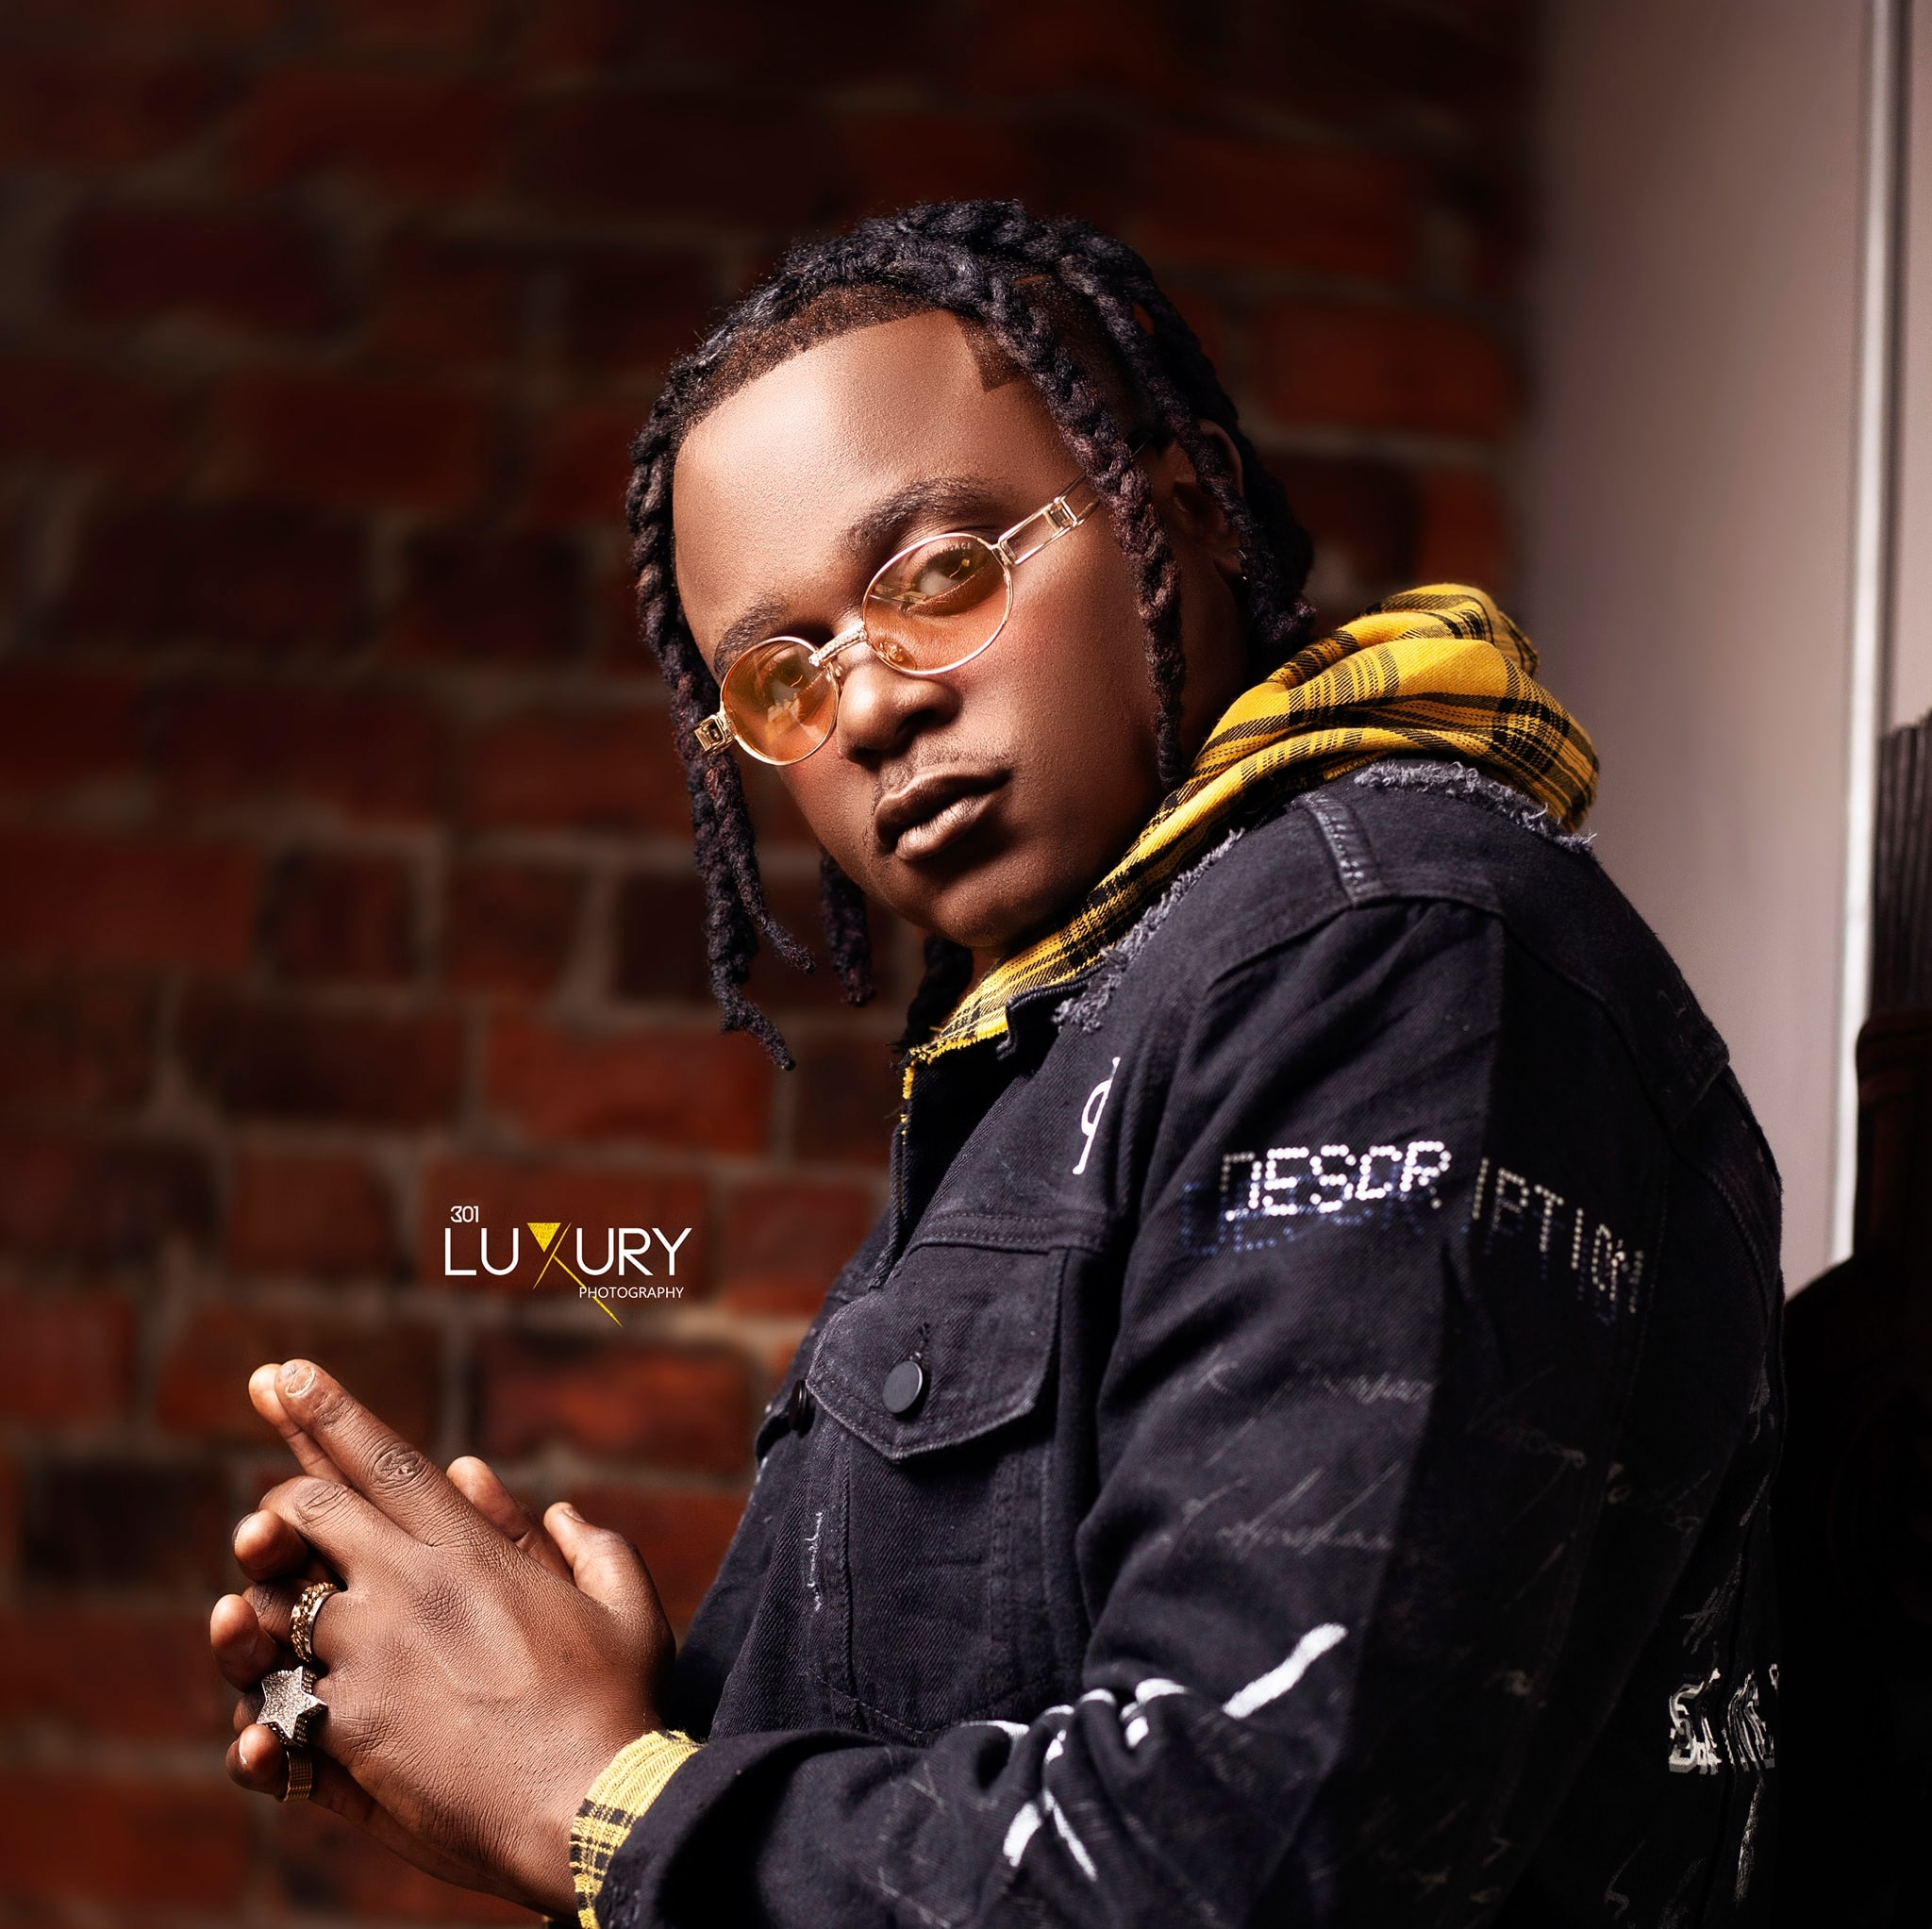 T-Sean Reveals Uptown Beats & Talks About His Hit New Hit Single